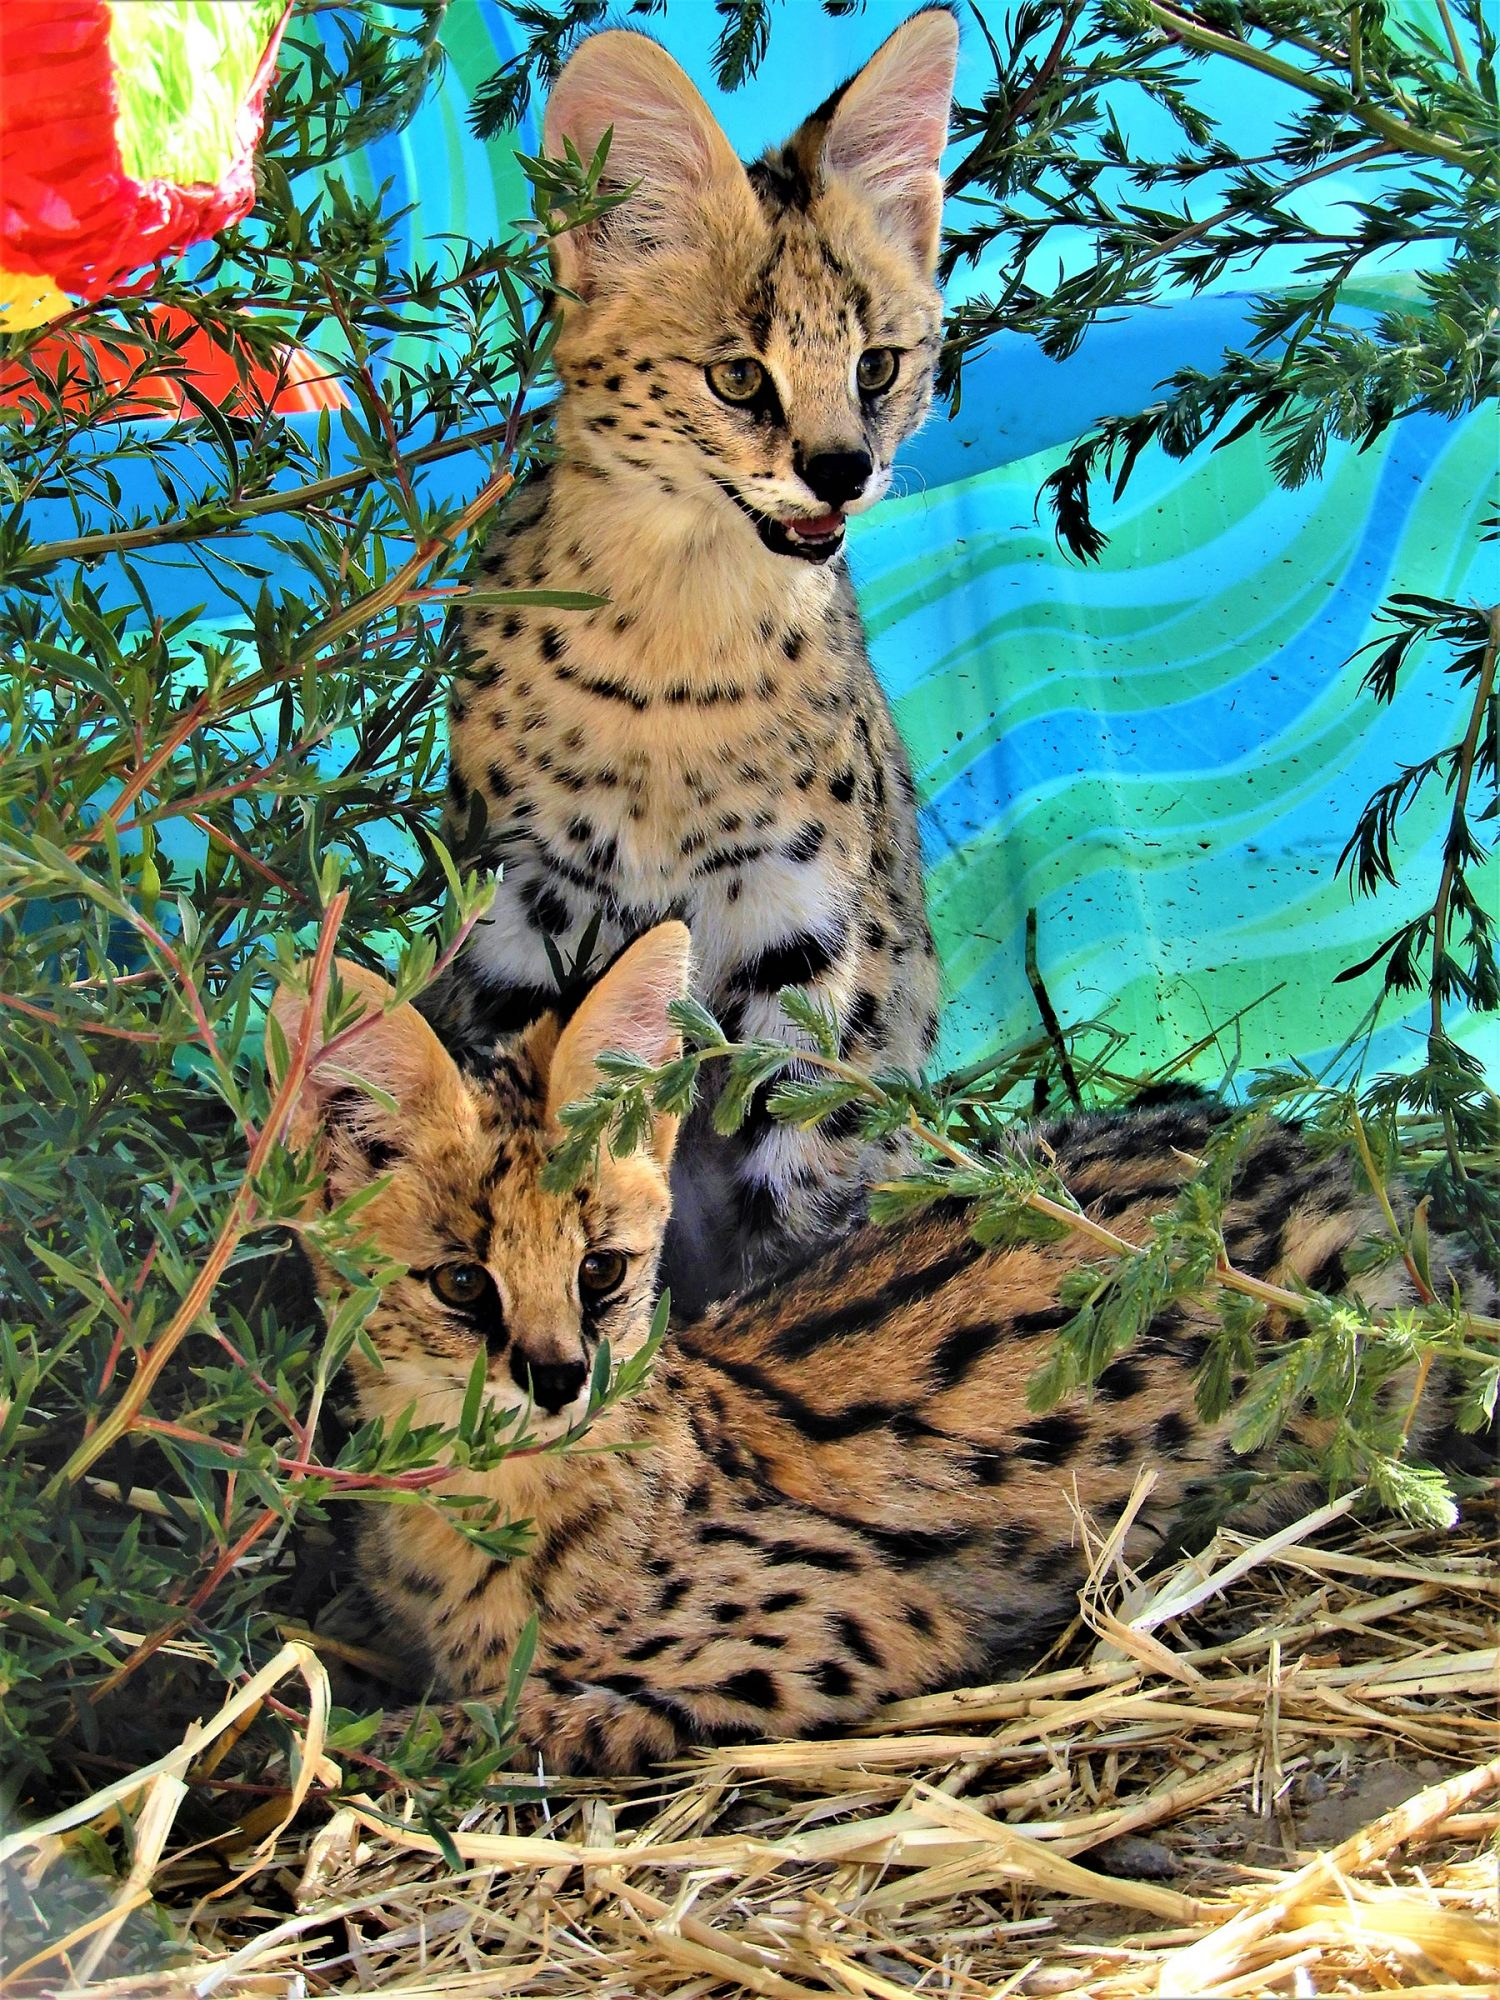 Caracal Wild Cats Rescued CR: Safe Haven Sanctuary, Nevada